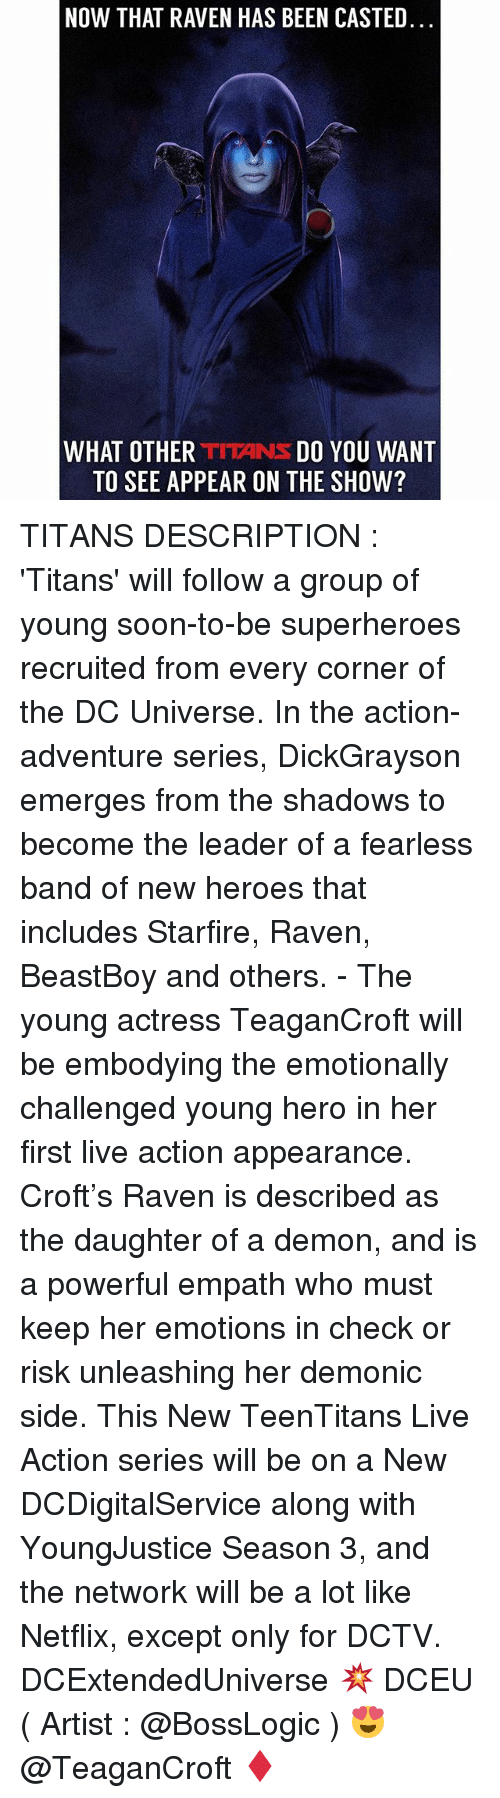 Demonizer: NOW THAT RAVEN HAS BEEN CASTED  WHAT OTHER TITANS DO YOU WANT  TO SEE APPEAR ON THE SHOW? TITANS DESCRIPTION : 'Titans' will follow a group of young soon-to-be superheroes recruited from every corner of the DC Universe. In the action-adventure series, DickGrayson emerges from the shadows to become the leader of a fearless band of new heroes that includes Starfire, Raven, BeastBoy and others. - The young actress TeaganCroft will be embodying the emotionally challenged young hero in her first live action appearance. Croft's Raven is described as the daughter of a demon, and is a powerful empath who must keep her emotions in check or risk unleashing her demonic side. This New TeenTitans Live Action series will be on a New DCDigitalService along with YoungJustice Season 3, and the network will be a lot like Netflix, except only for DCTV. DCExtendedUniverse 💥 DCEU ( Artist : @BossLogic ) 😍 @TeaganCroft ♦️